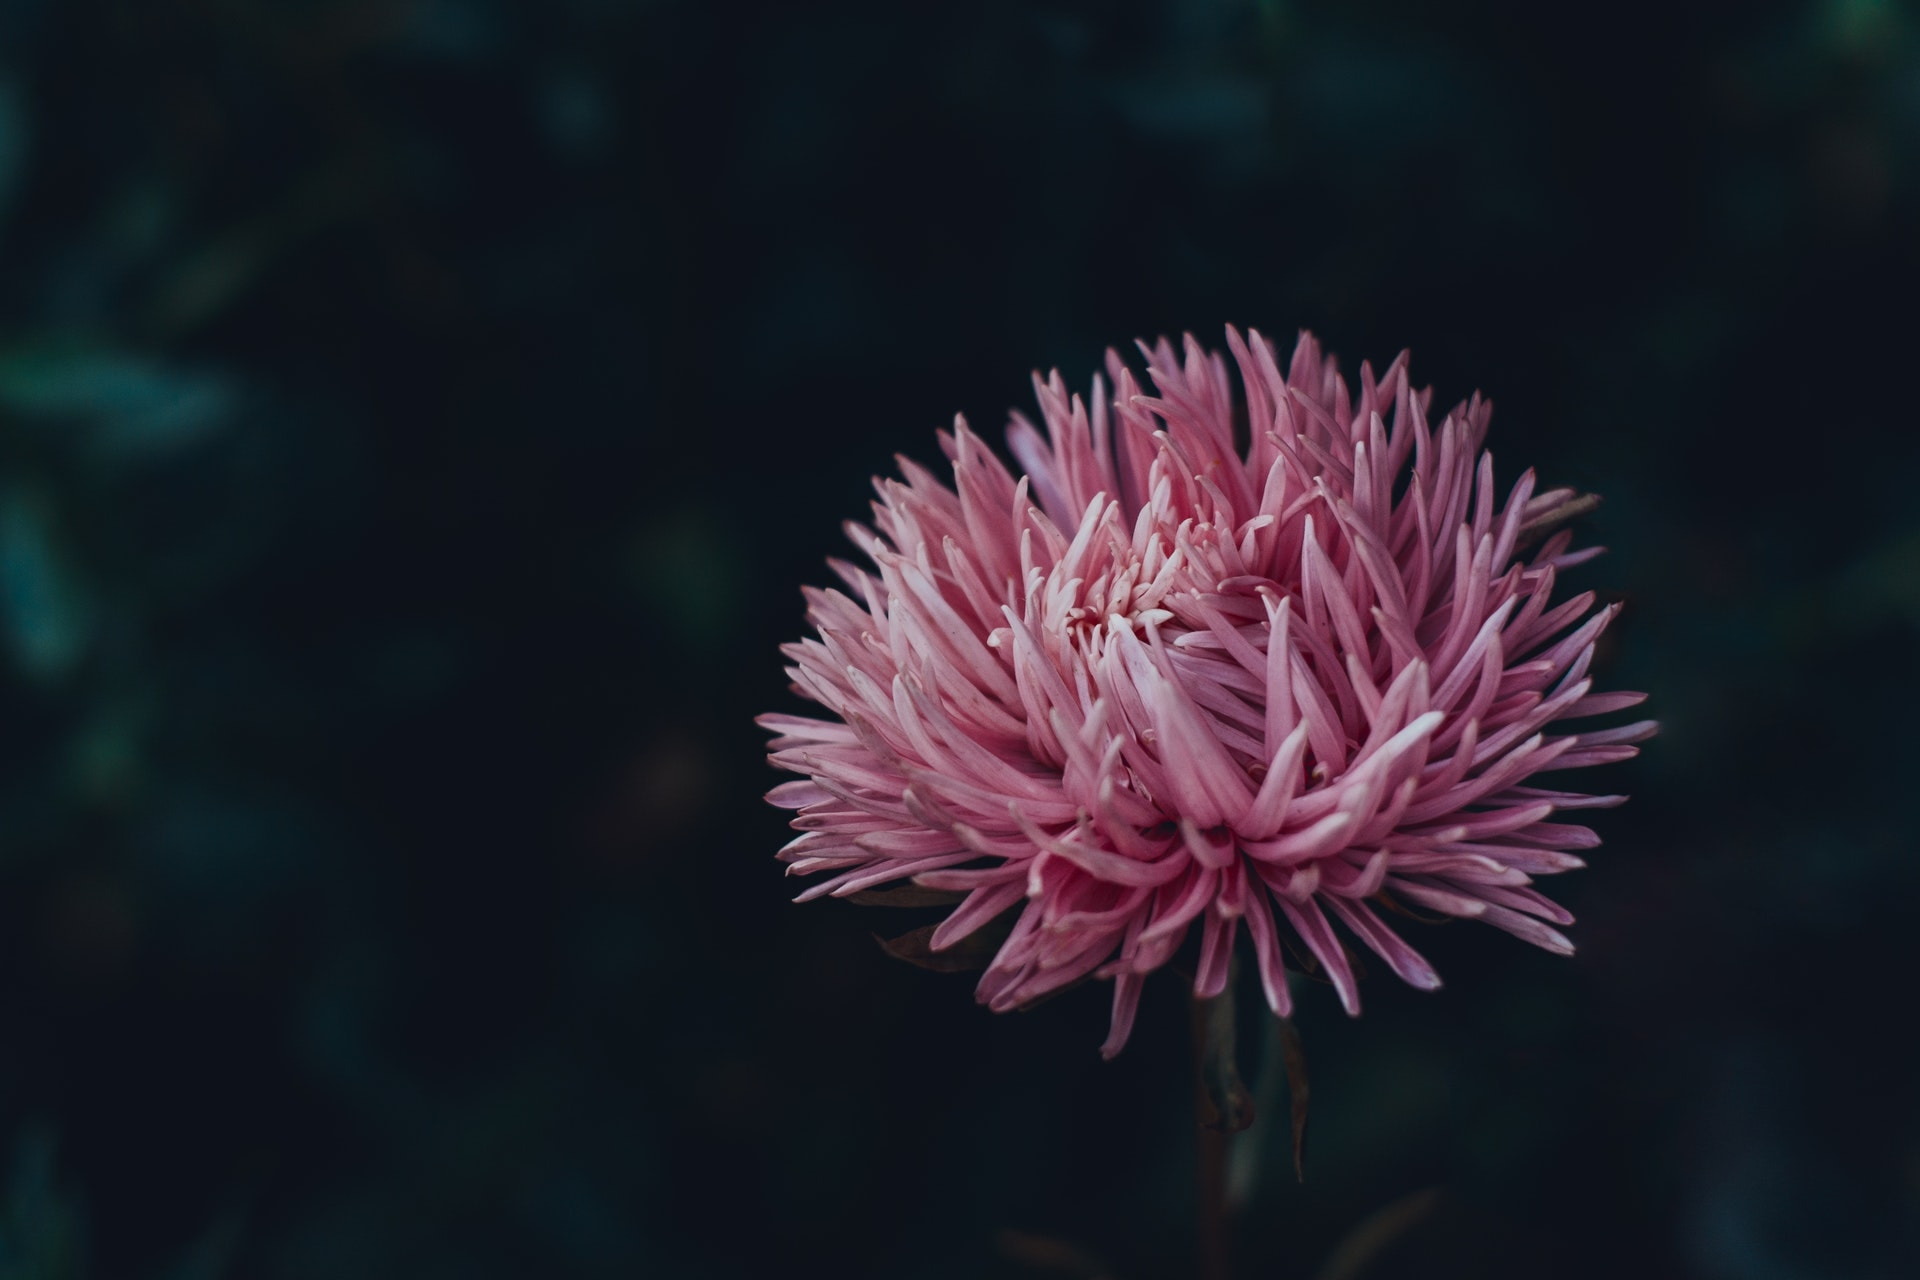 Tips for Fantastic Flower Photography